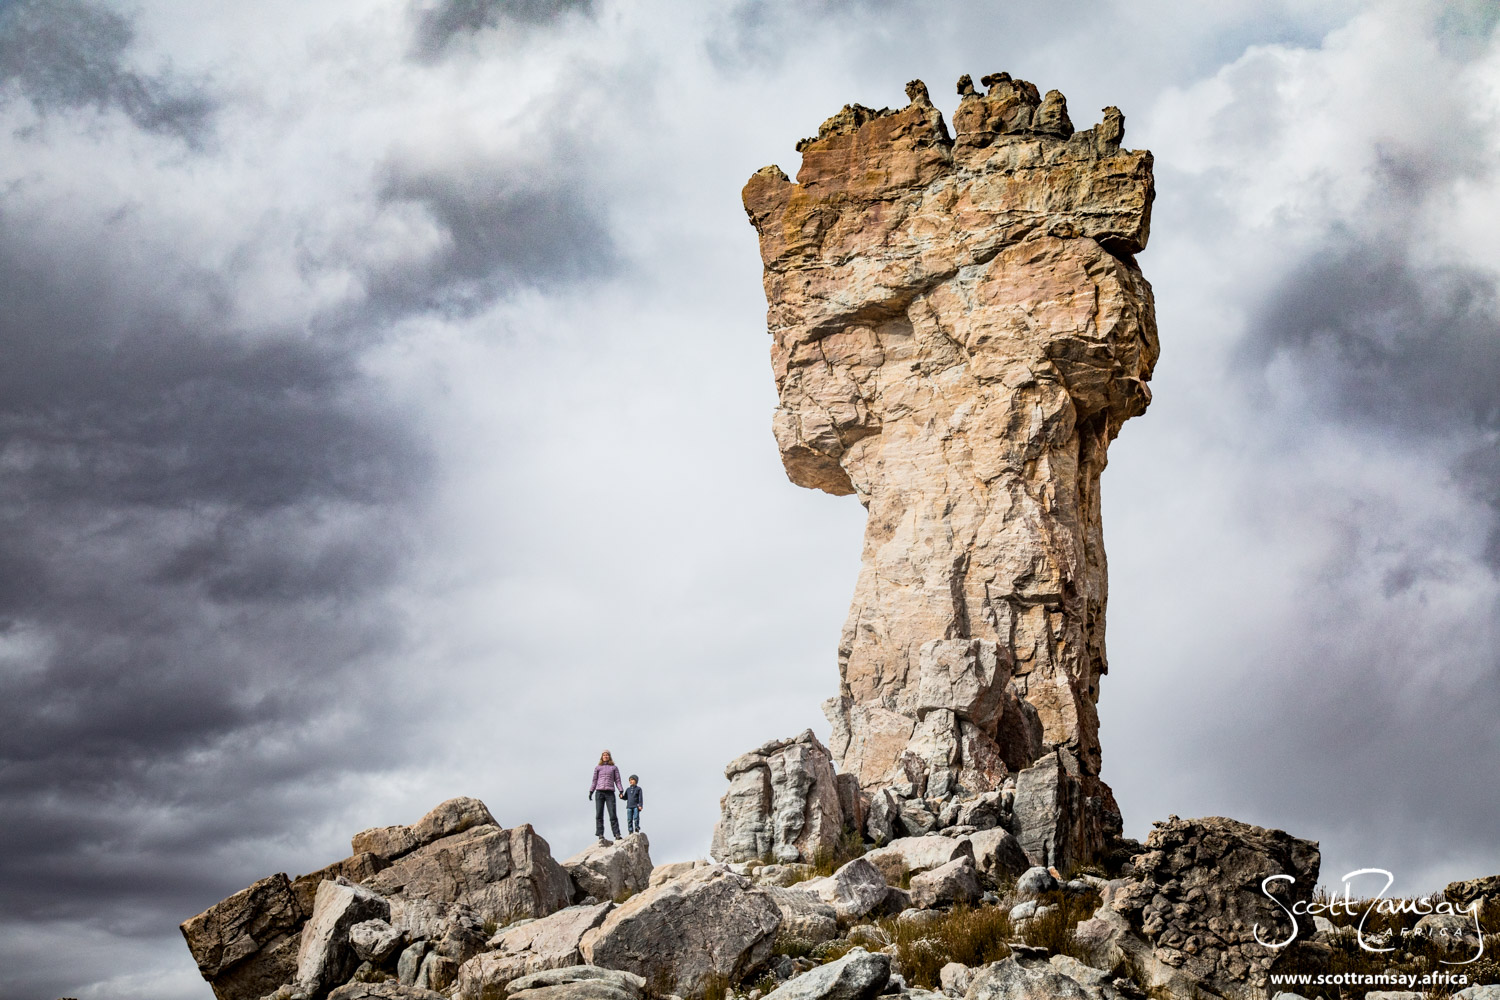 My fellow explorers Jax and Gabriel Davis dwarfed next to the Maltese Cross, one of several spectacular rock formations in the Cederberg Wilderness three hours north of Cape Town